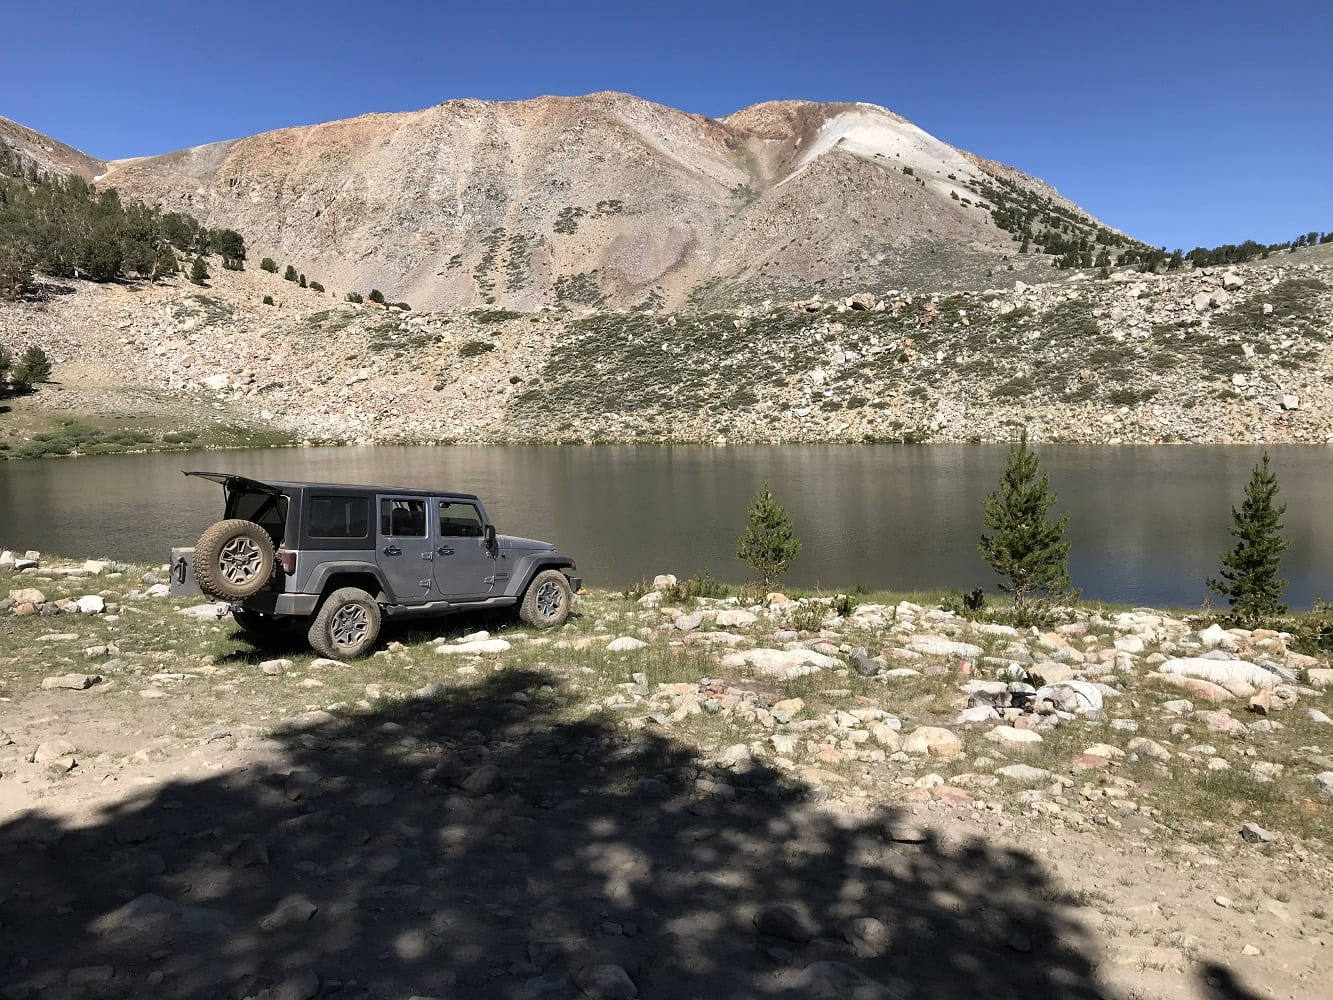 Camping Inyo National Forest